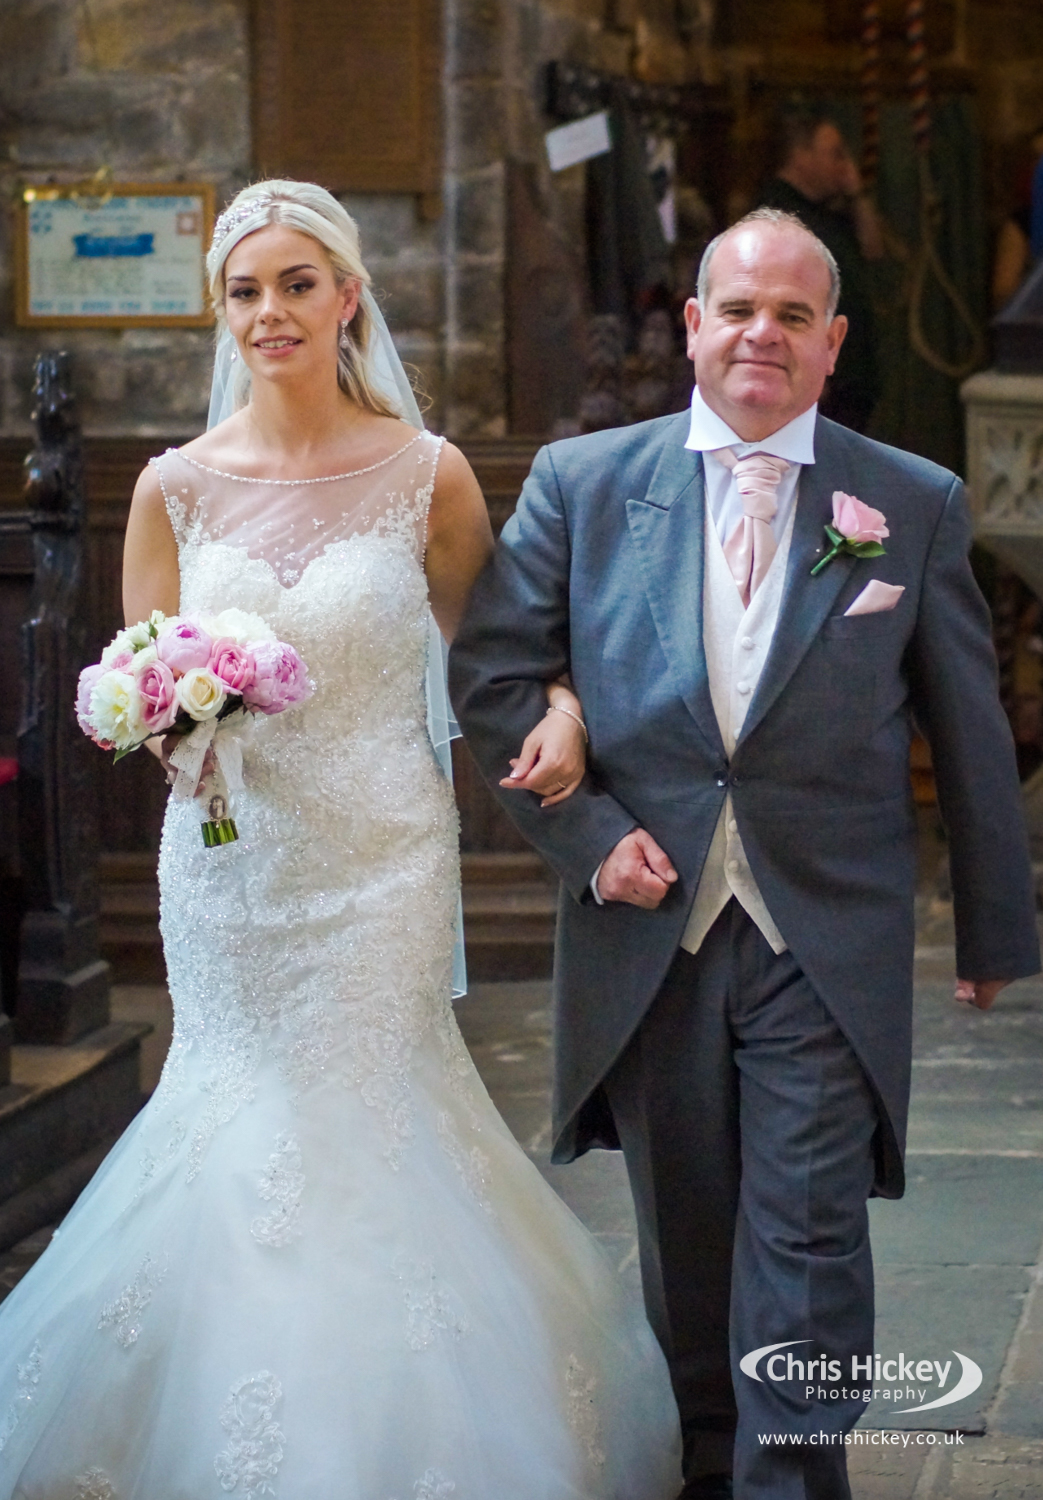 Wedding Photographer at Devonshire House Hotel in Liverpool